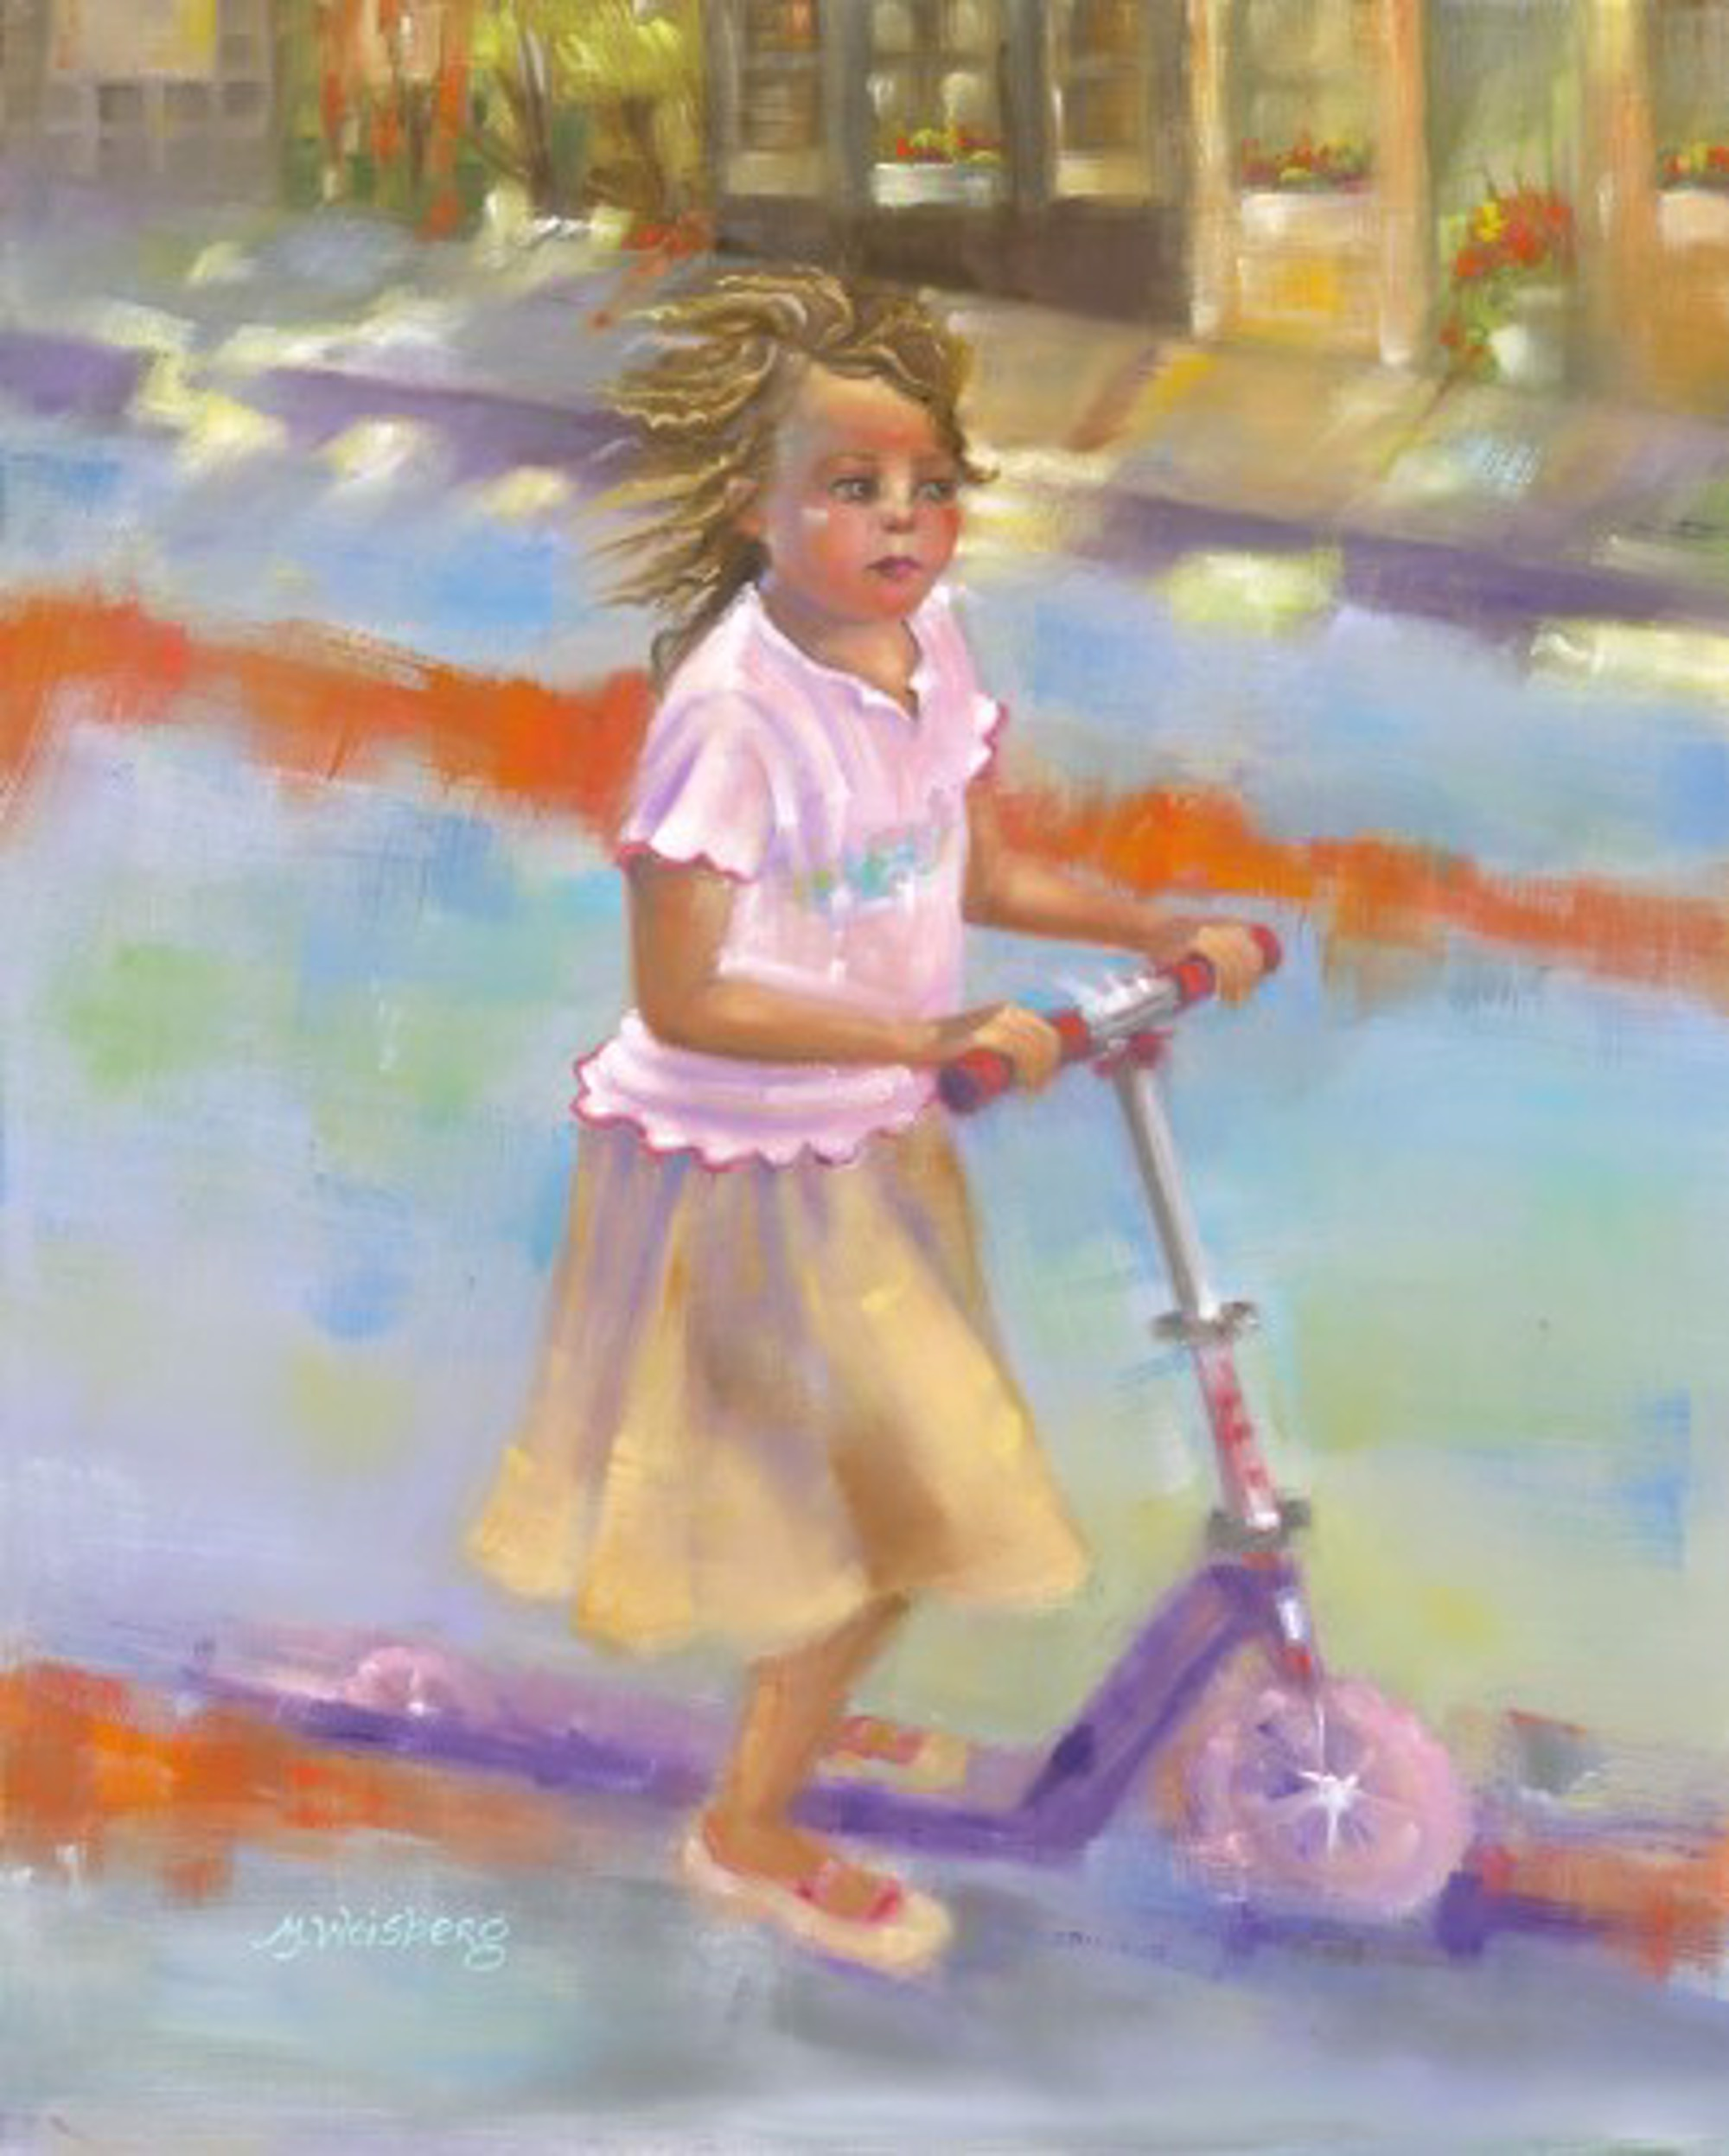 LITTLE GIRL ON SCOOTER by WEISBERG